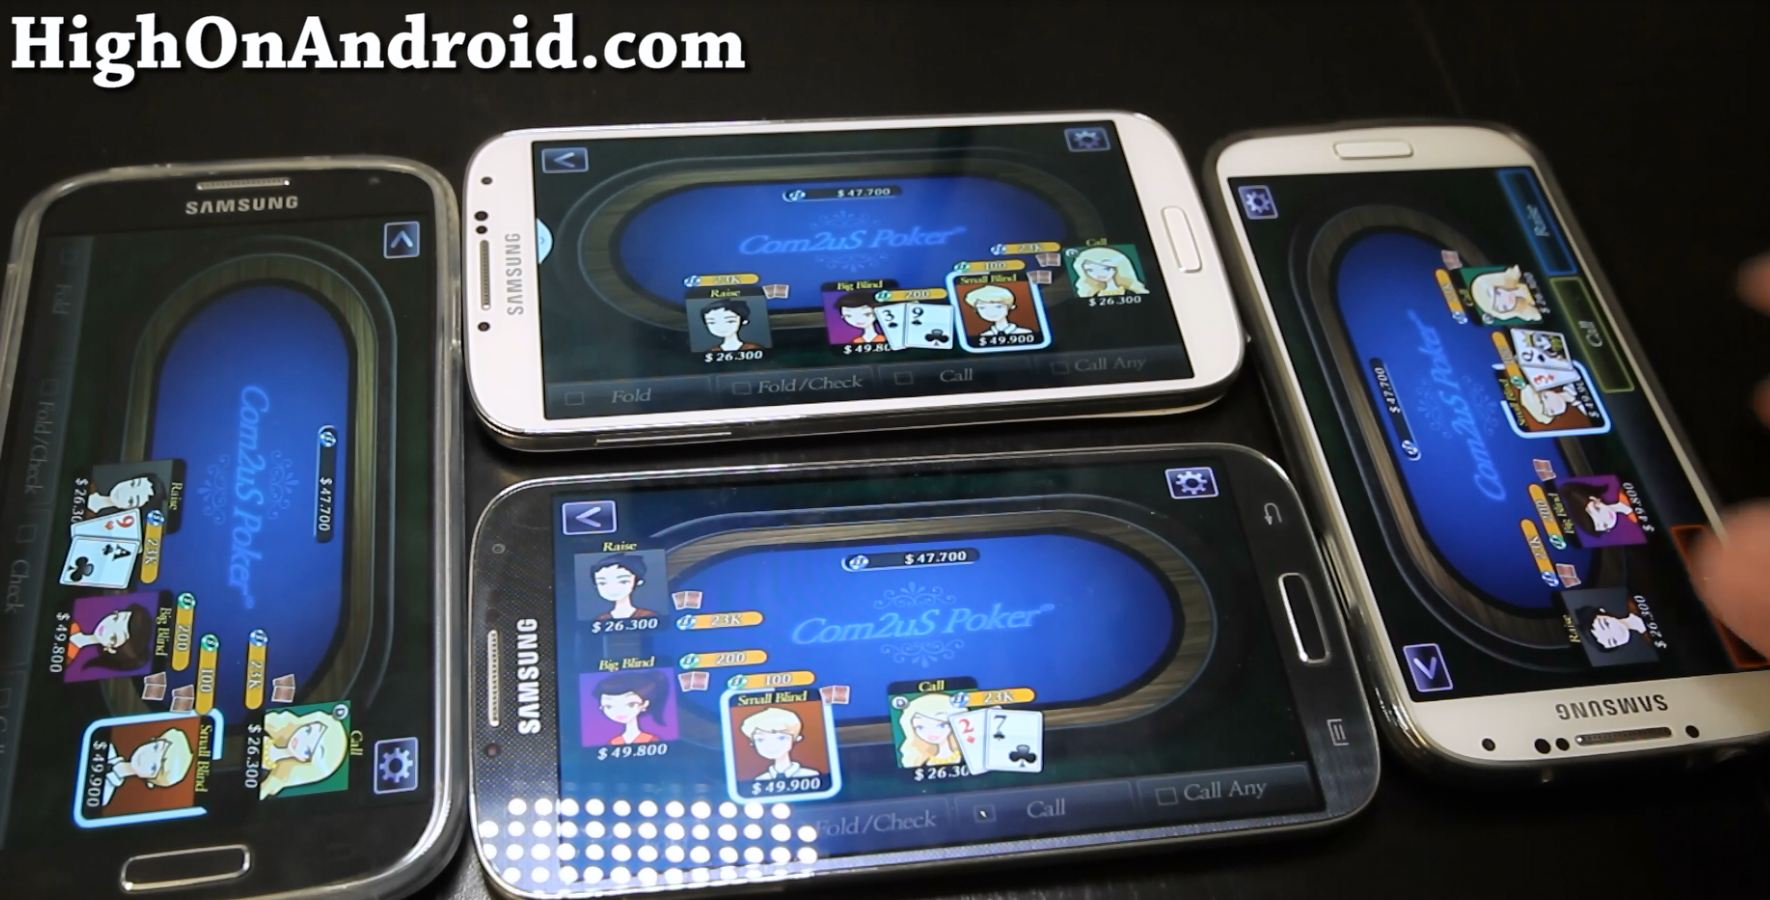 GalaxyS4-group-play-stereo-surround-and-games-demo-2